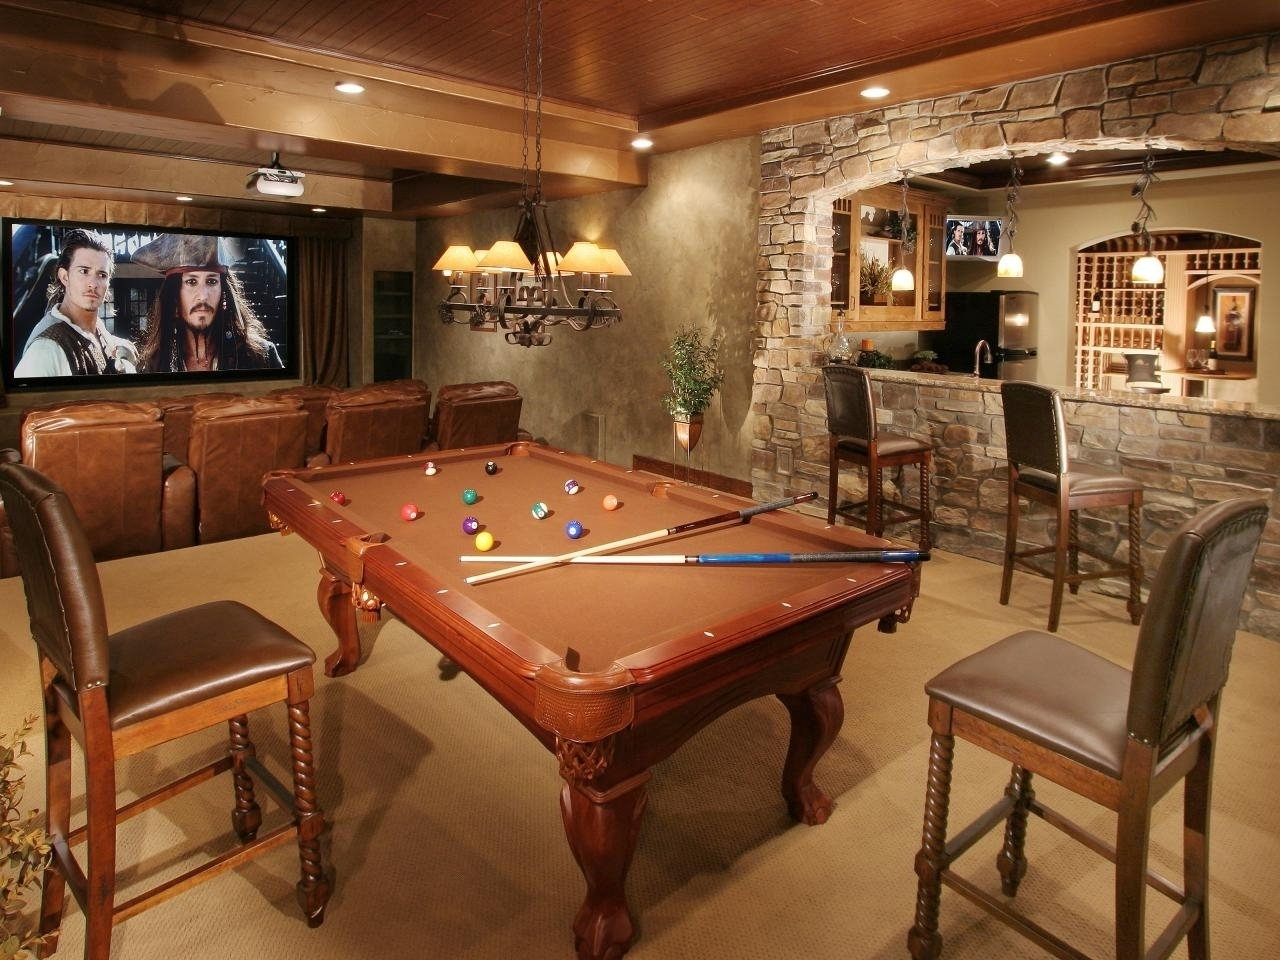 10 Amazing Man Cave Ideas For Basement %name 2020